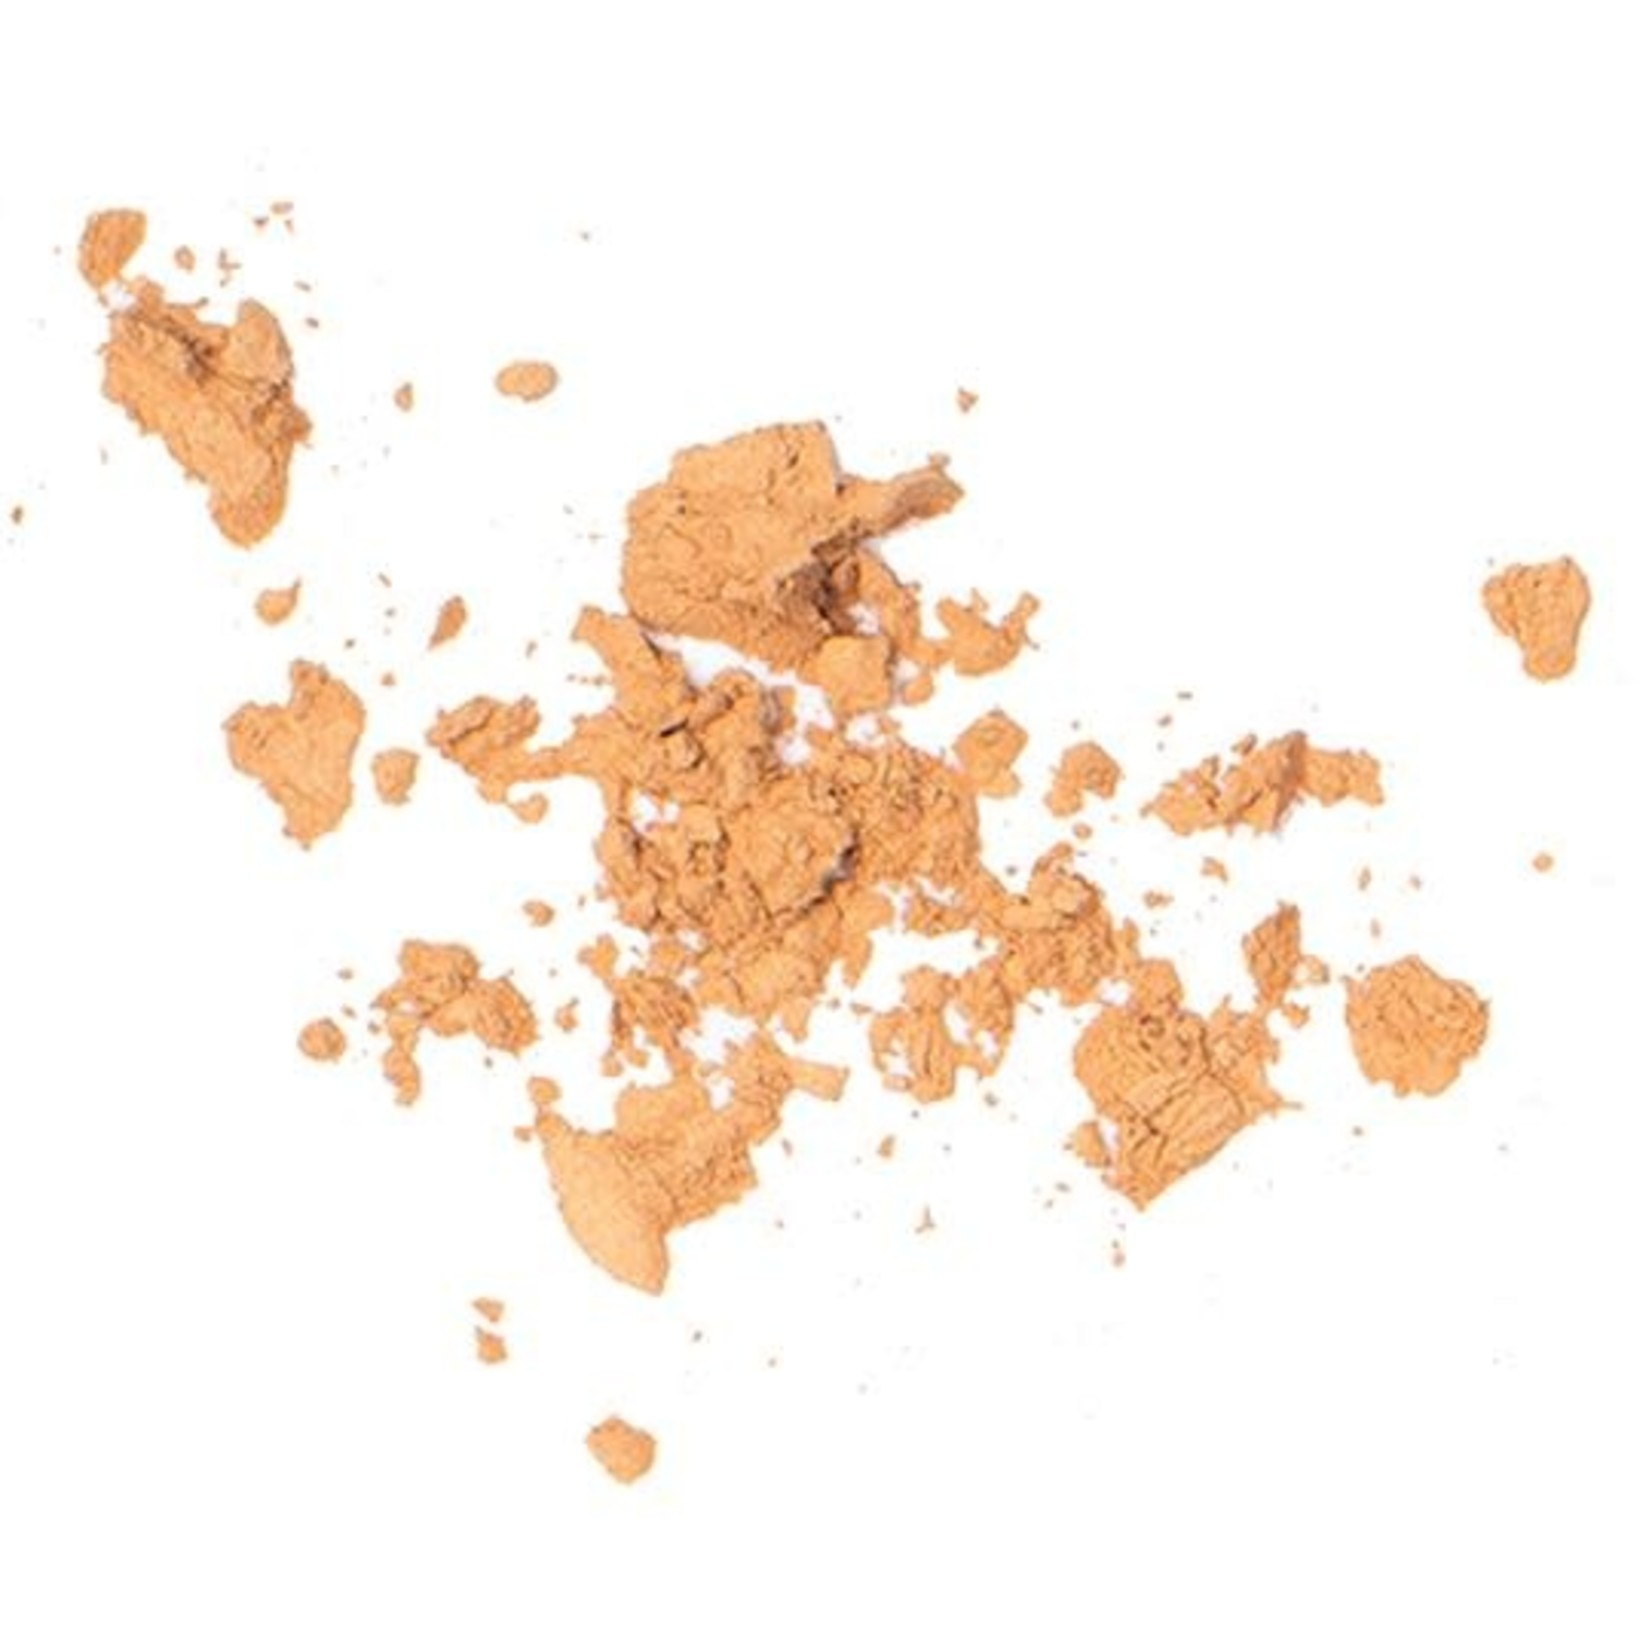 ELATE COSMETICS UNIFY BRONZE POWDER - LIGHT